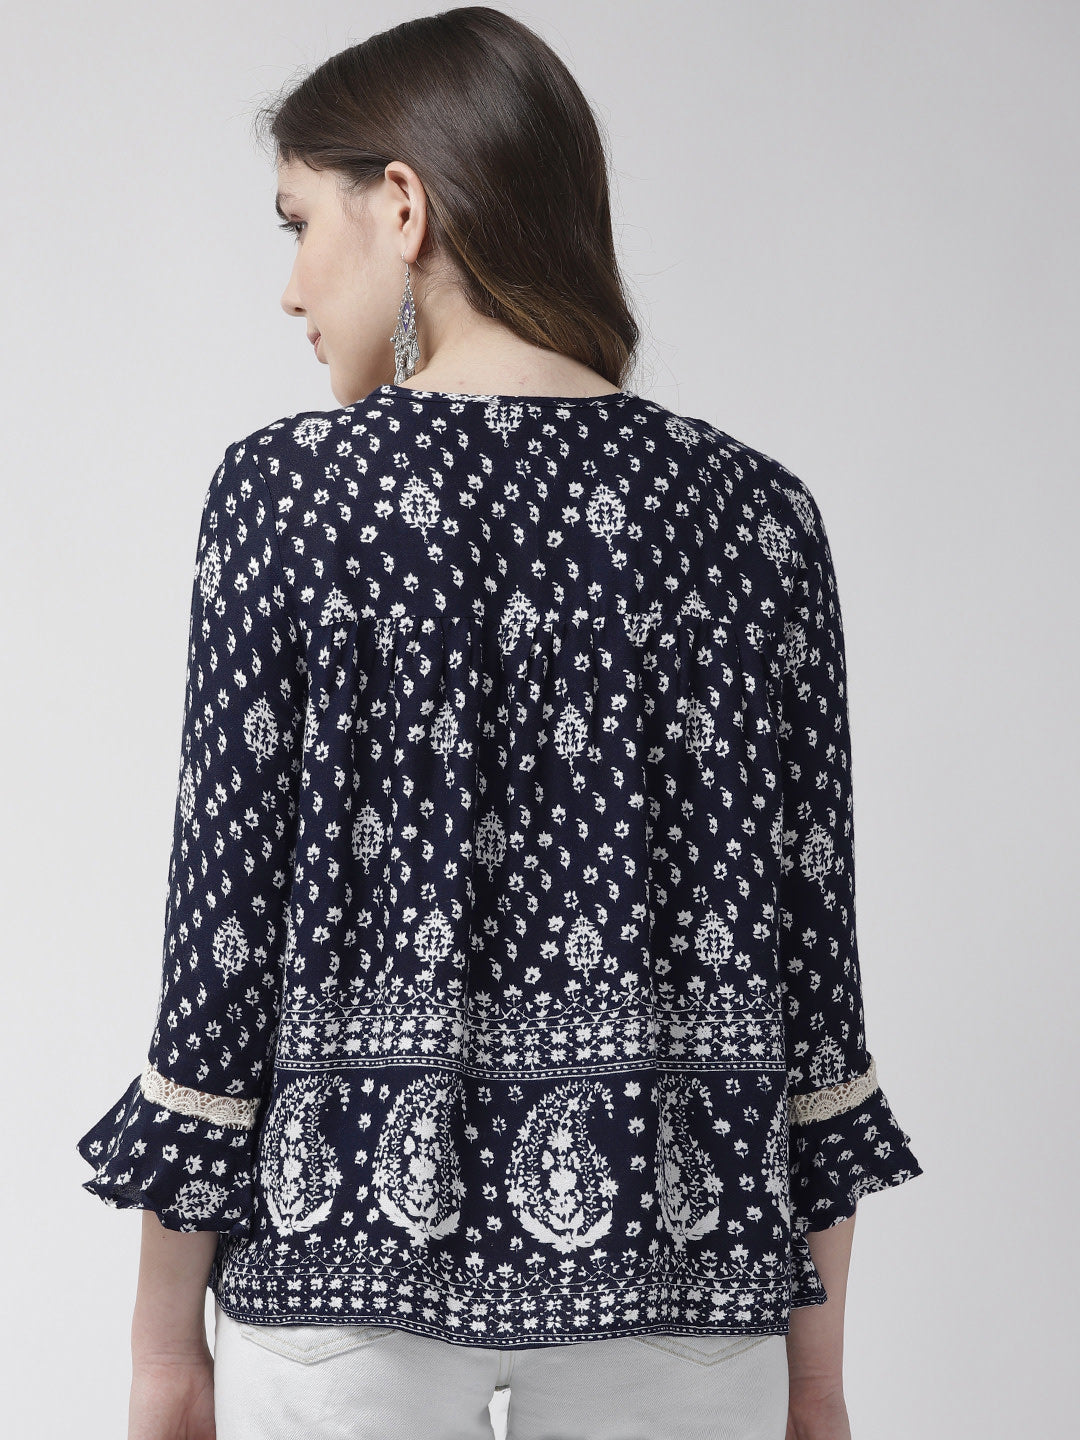 Women Navy Blue & White Printed Top